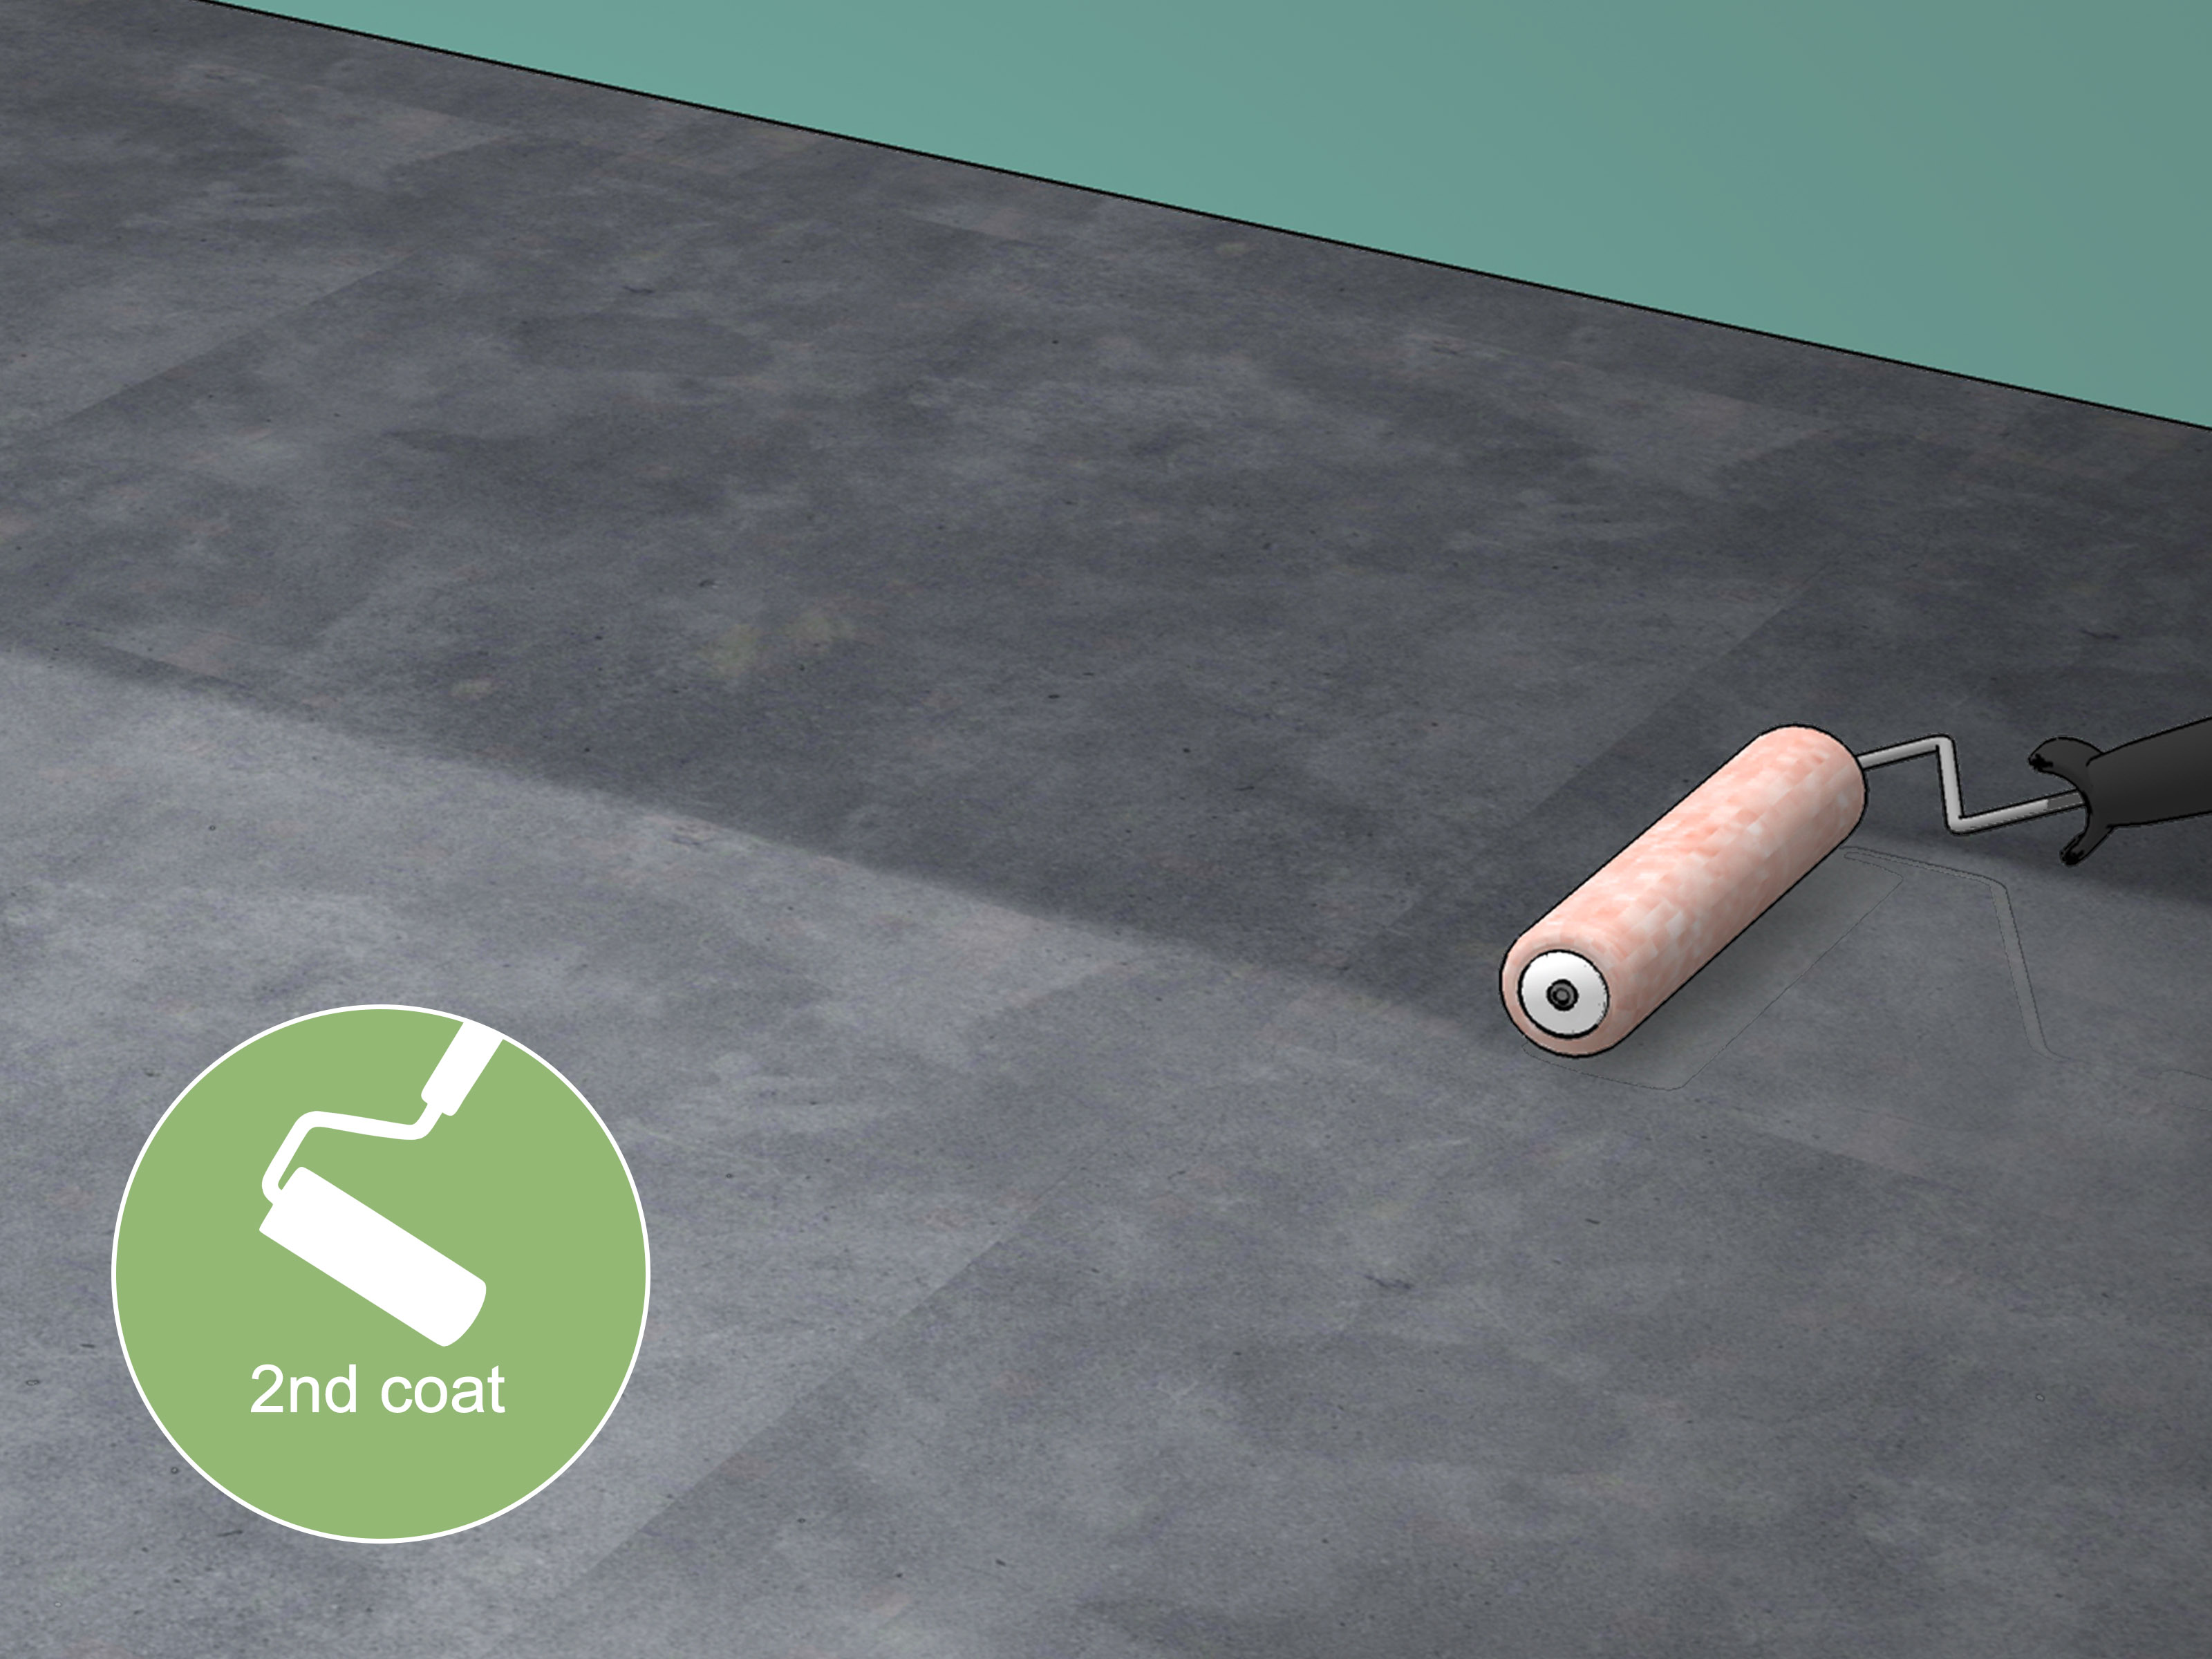 Garage Floor Sealer B&q How To Seal Concrete Floors With Pictures Wikihow